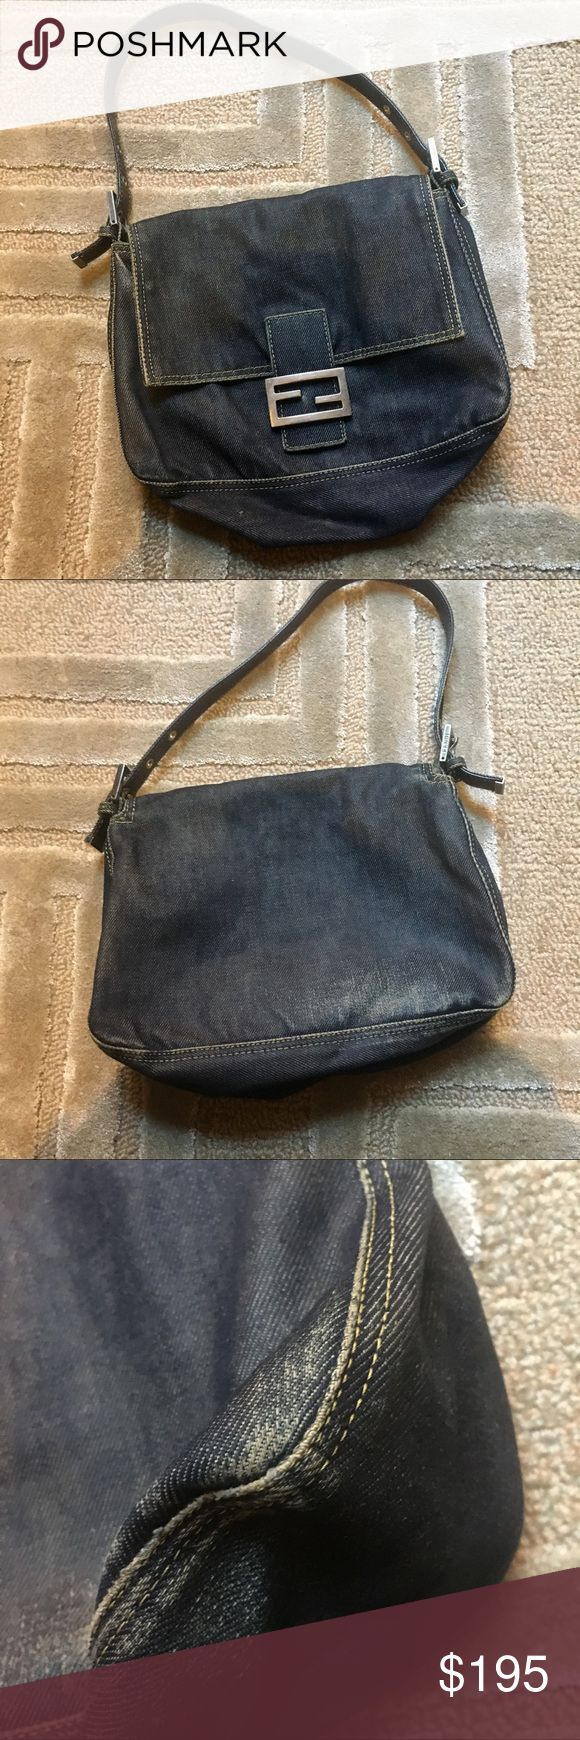 FENDI - medium classic denim flap bag Classic fendi bag made with denim. Blue denim with brown leather finishes and an adjustable strap. This bag has been gently used and in incredible pre owned condition. No stains, rips, tears, or odors - condition is reflected in the price Fendi Bags Shoulder Bags